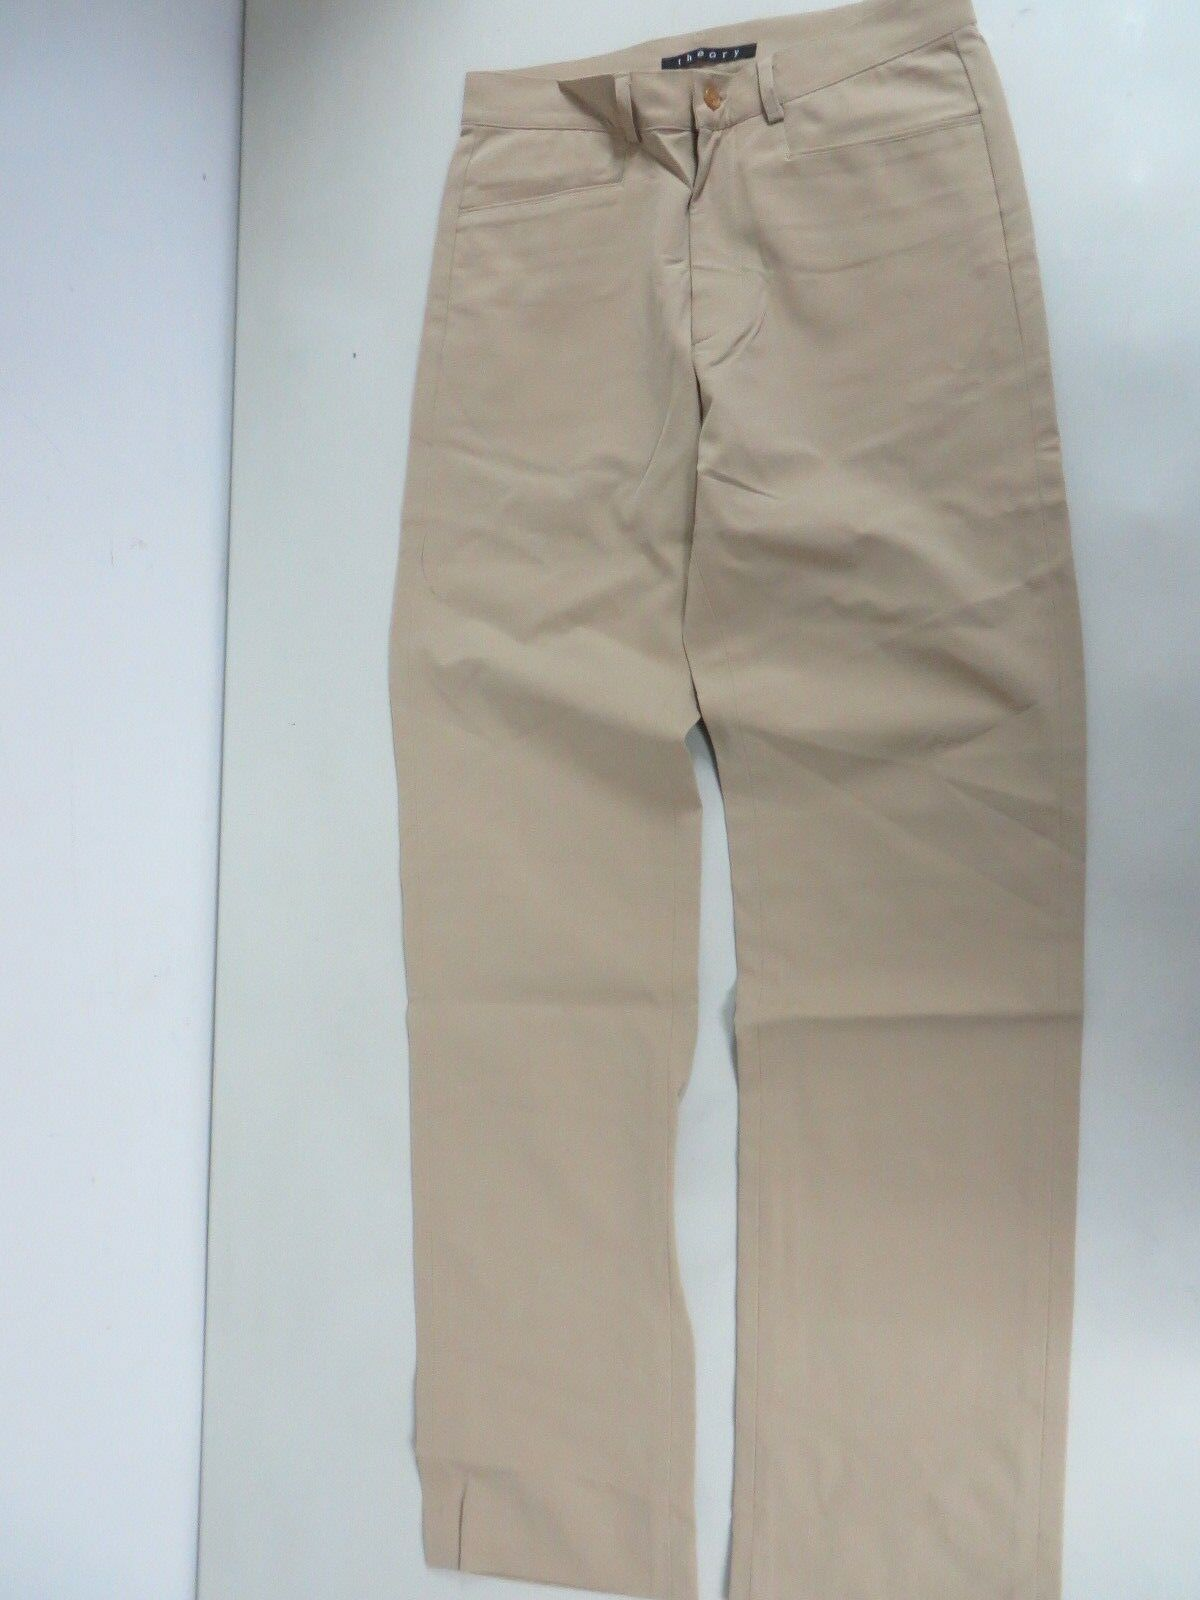 NWOT Theory Sports Nylon spandex Tan Brown Flat Front Slim fit Pants 28 x 31.5